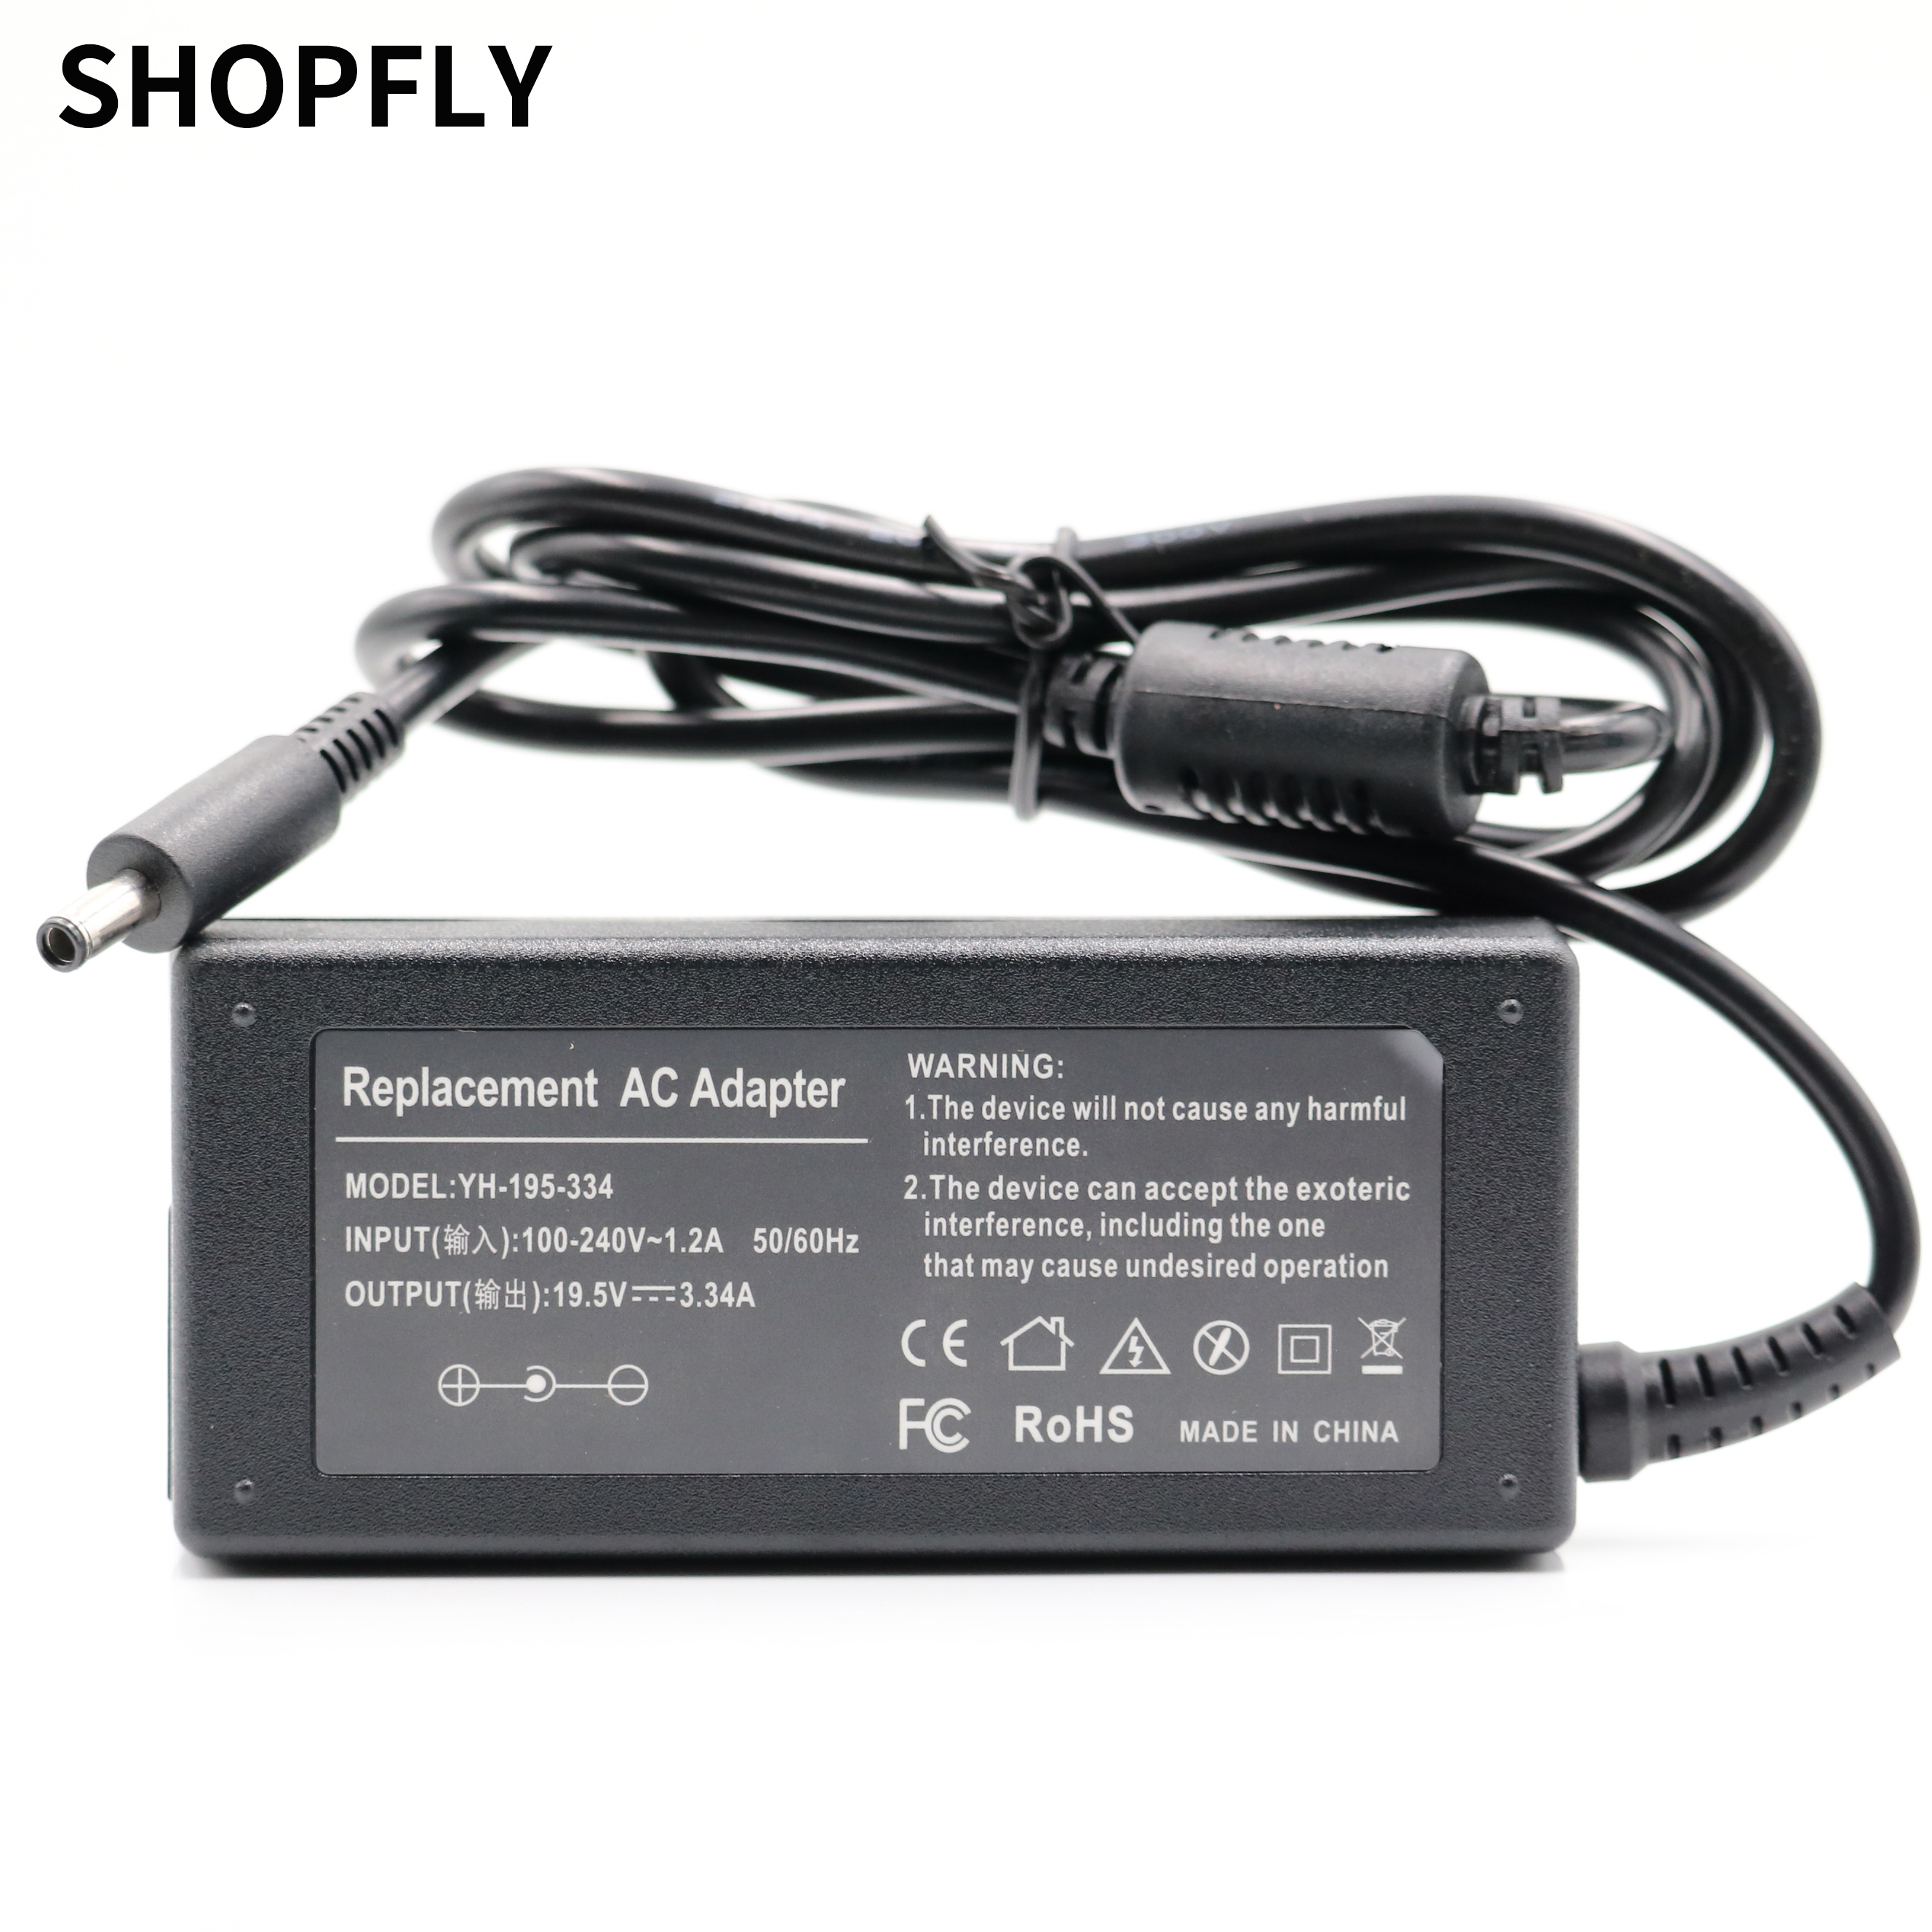 19.5V 3.33A 3.34A Laptop AC power adapter charger <font><b>HP</b></font> EliteBook <font><b>810</b></font> <font><b>G1</b></font> <font><b>810</b></font> G2 820 <font><b>G1</b></font> 820 G2 840 <font><b>G1</b></font> 840 G2 850 <font><b>G1</b></font> 850 G2 supply image